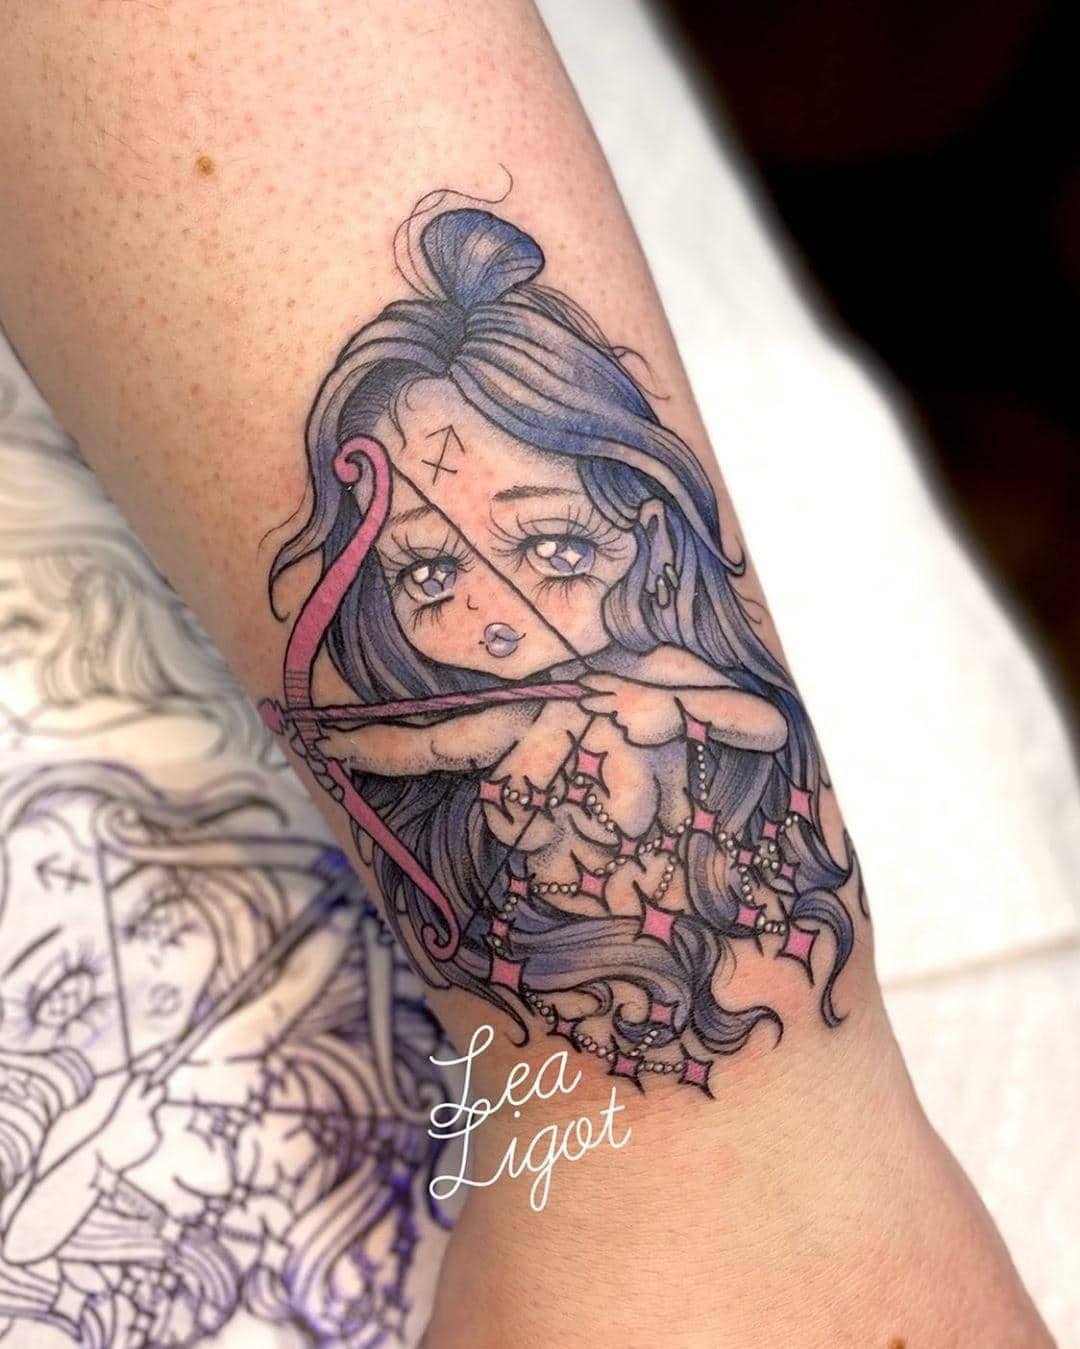 blue haired girl pulling an arrow tattoo on the arm